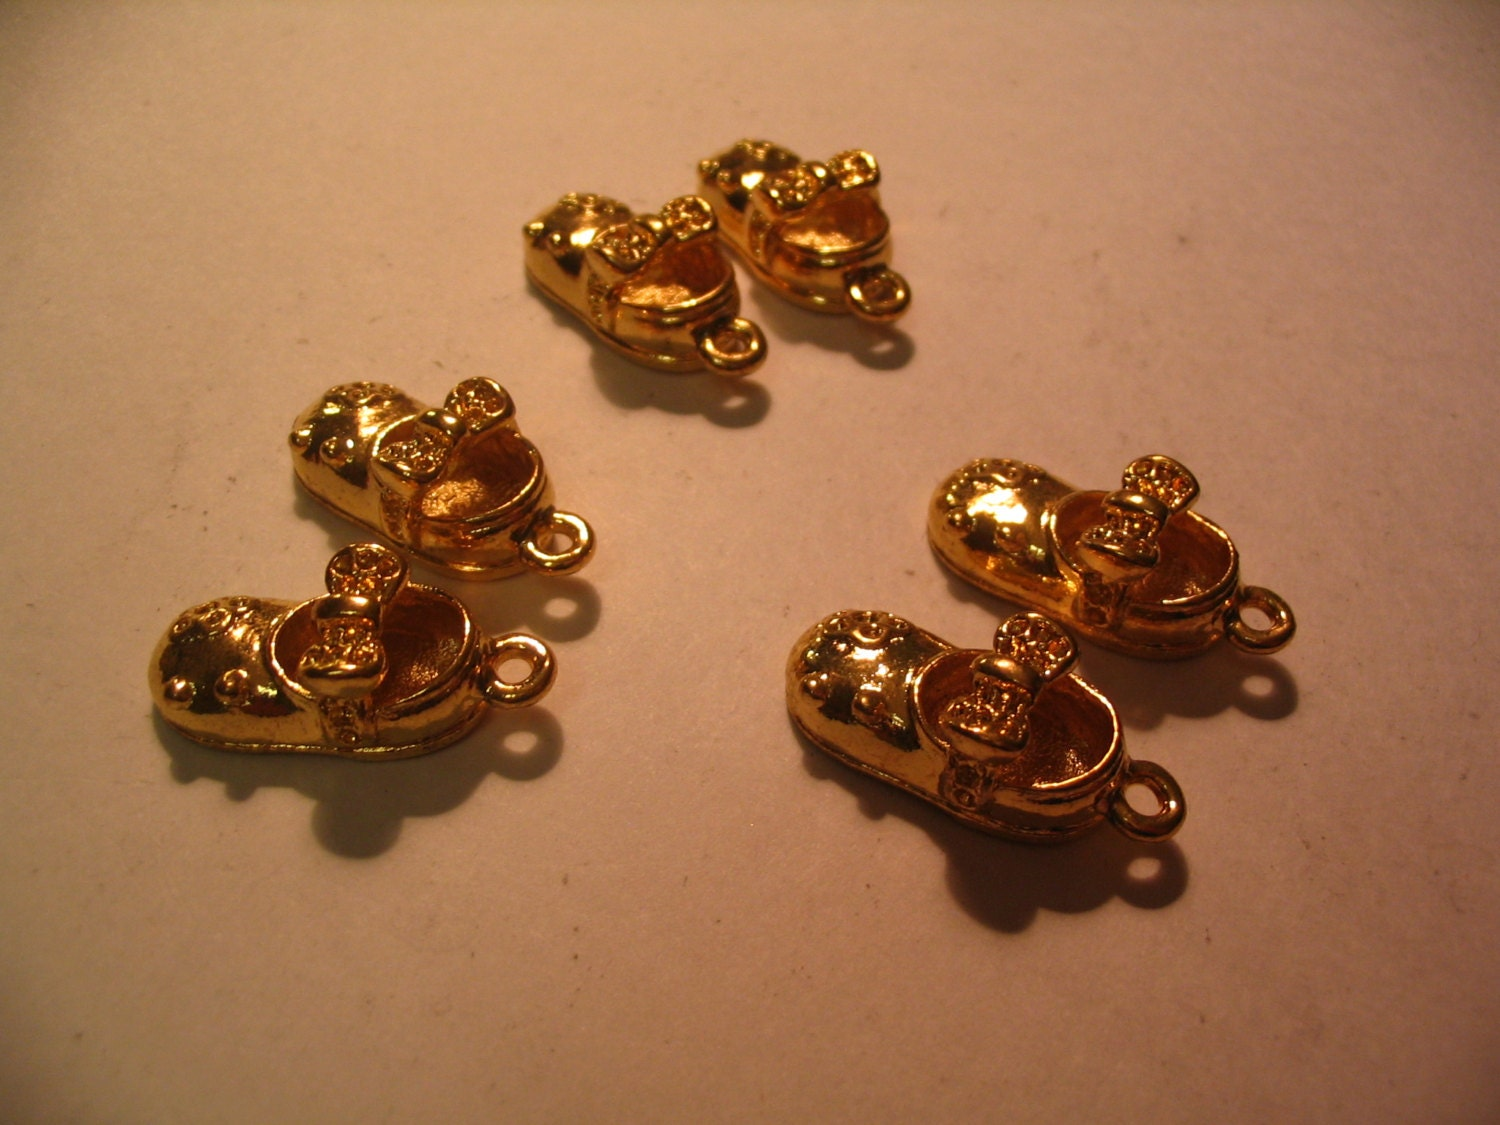 6 vintage baby girl shoes charms jewelry craft supplies for Craft and jewelry supplies